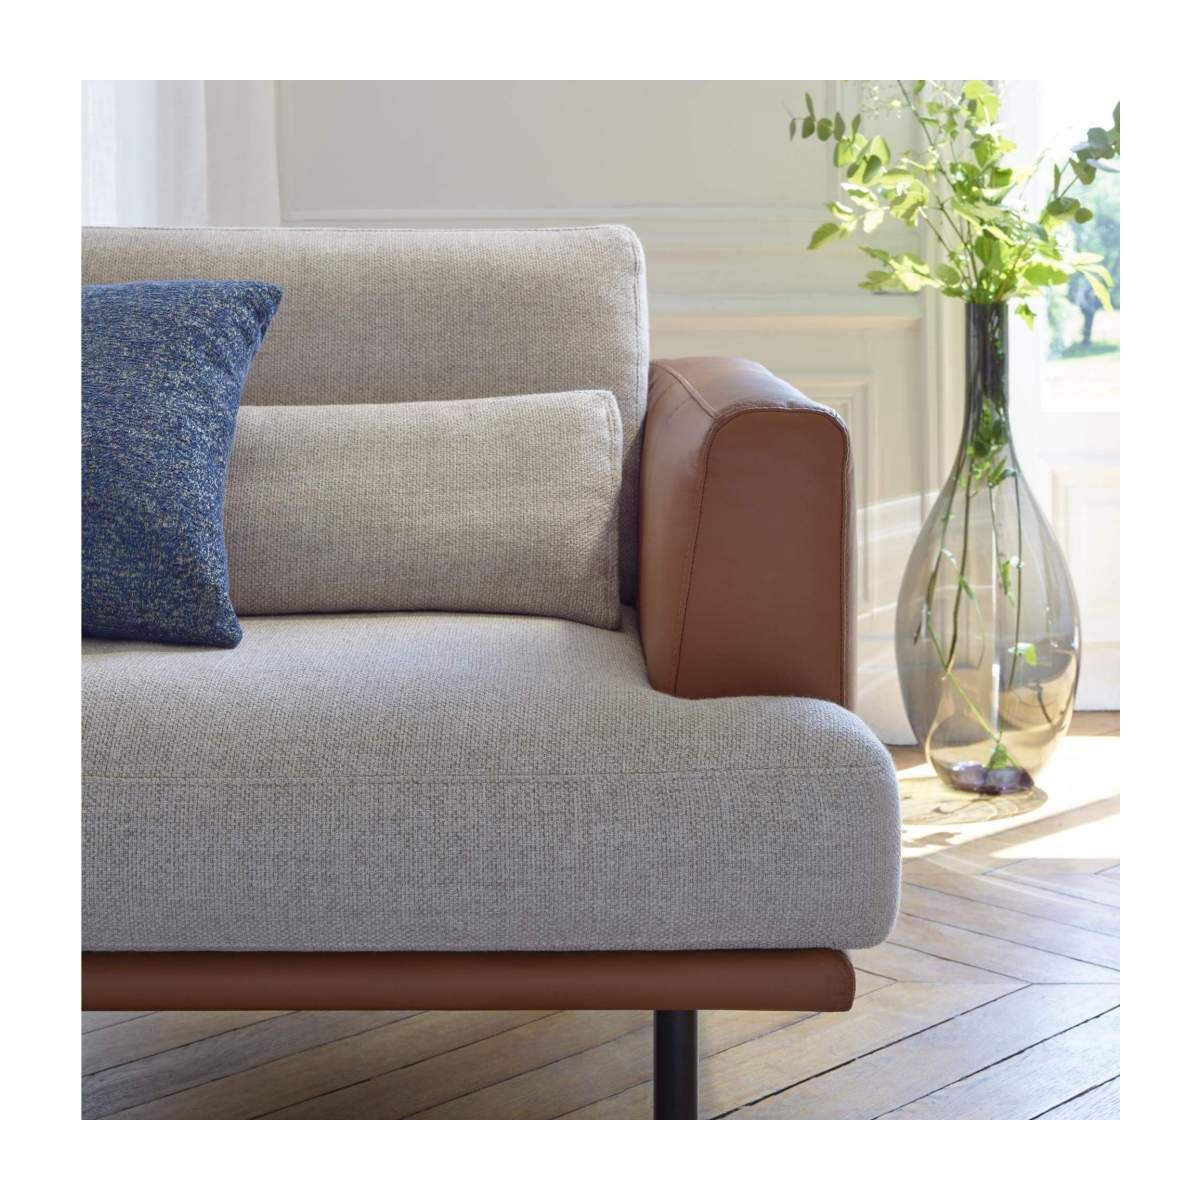 3 seater sofa in Super Velvet fabric, petrol blue with base and armrests in brown leather n°6